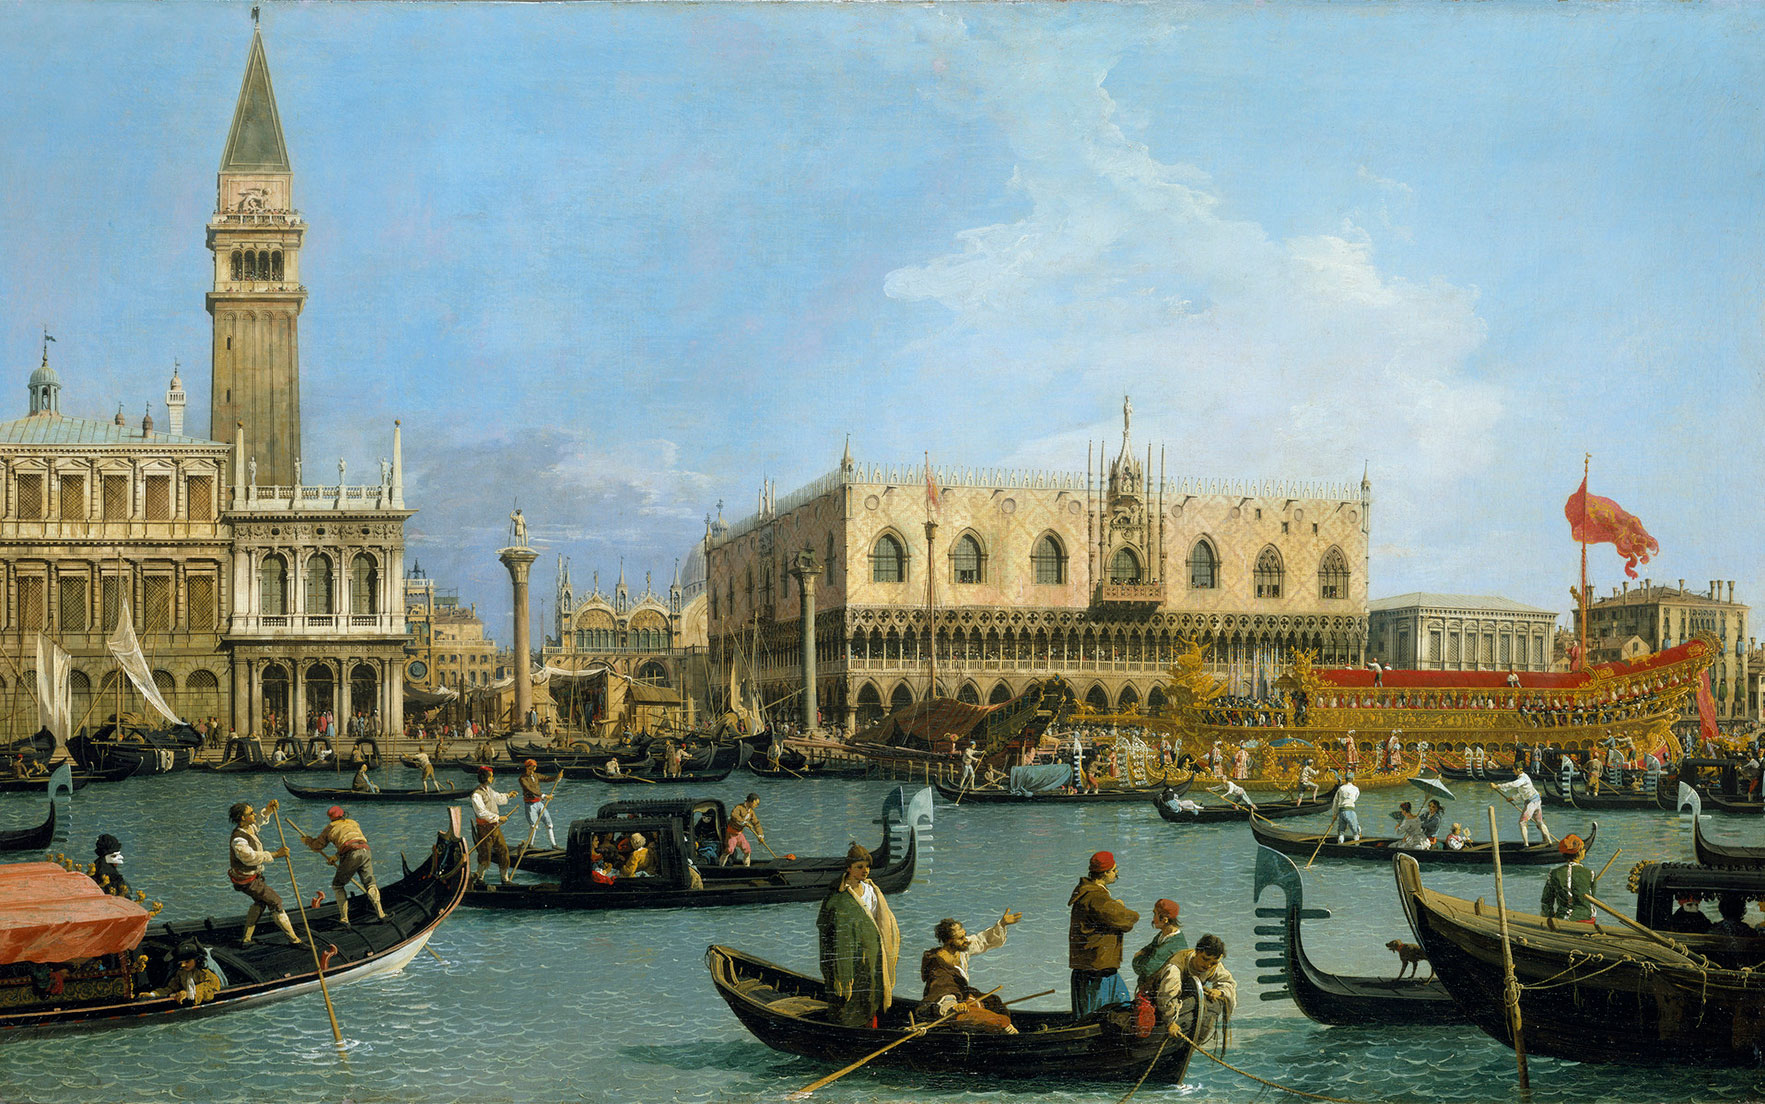 Canaletto, Venice The Central Stretch of the Grand Canal, c.1734. Royal Collection Trust © Her Majesty Queen Elizabeth II 2016       .full-screen .image-preview { background-position 50%